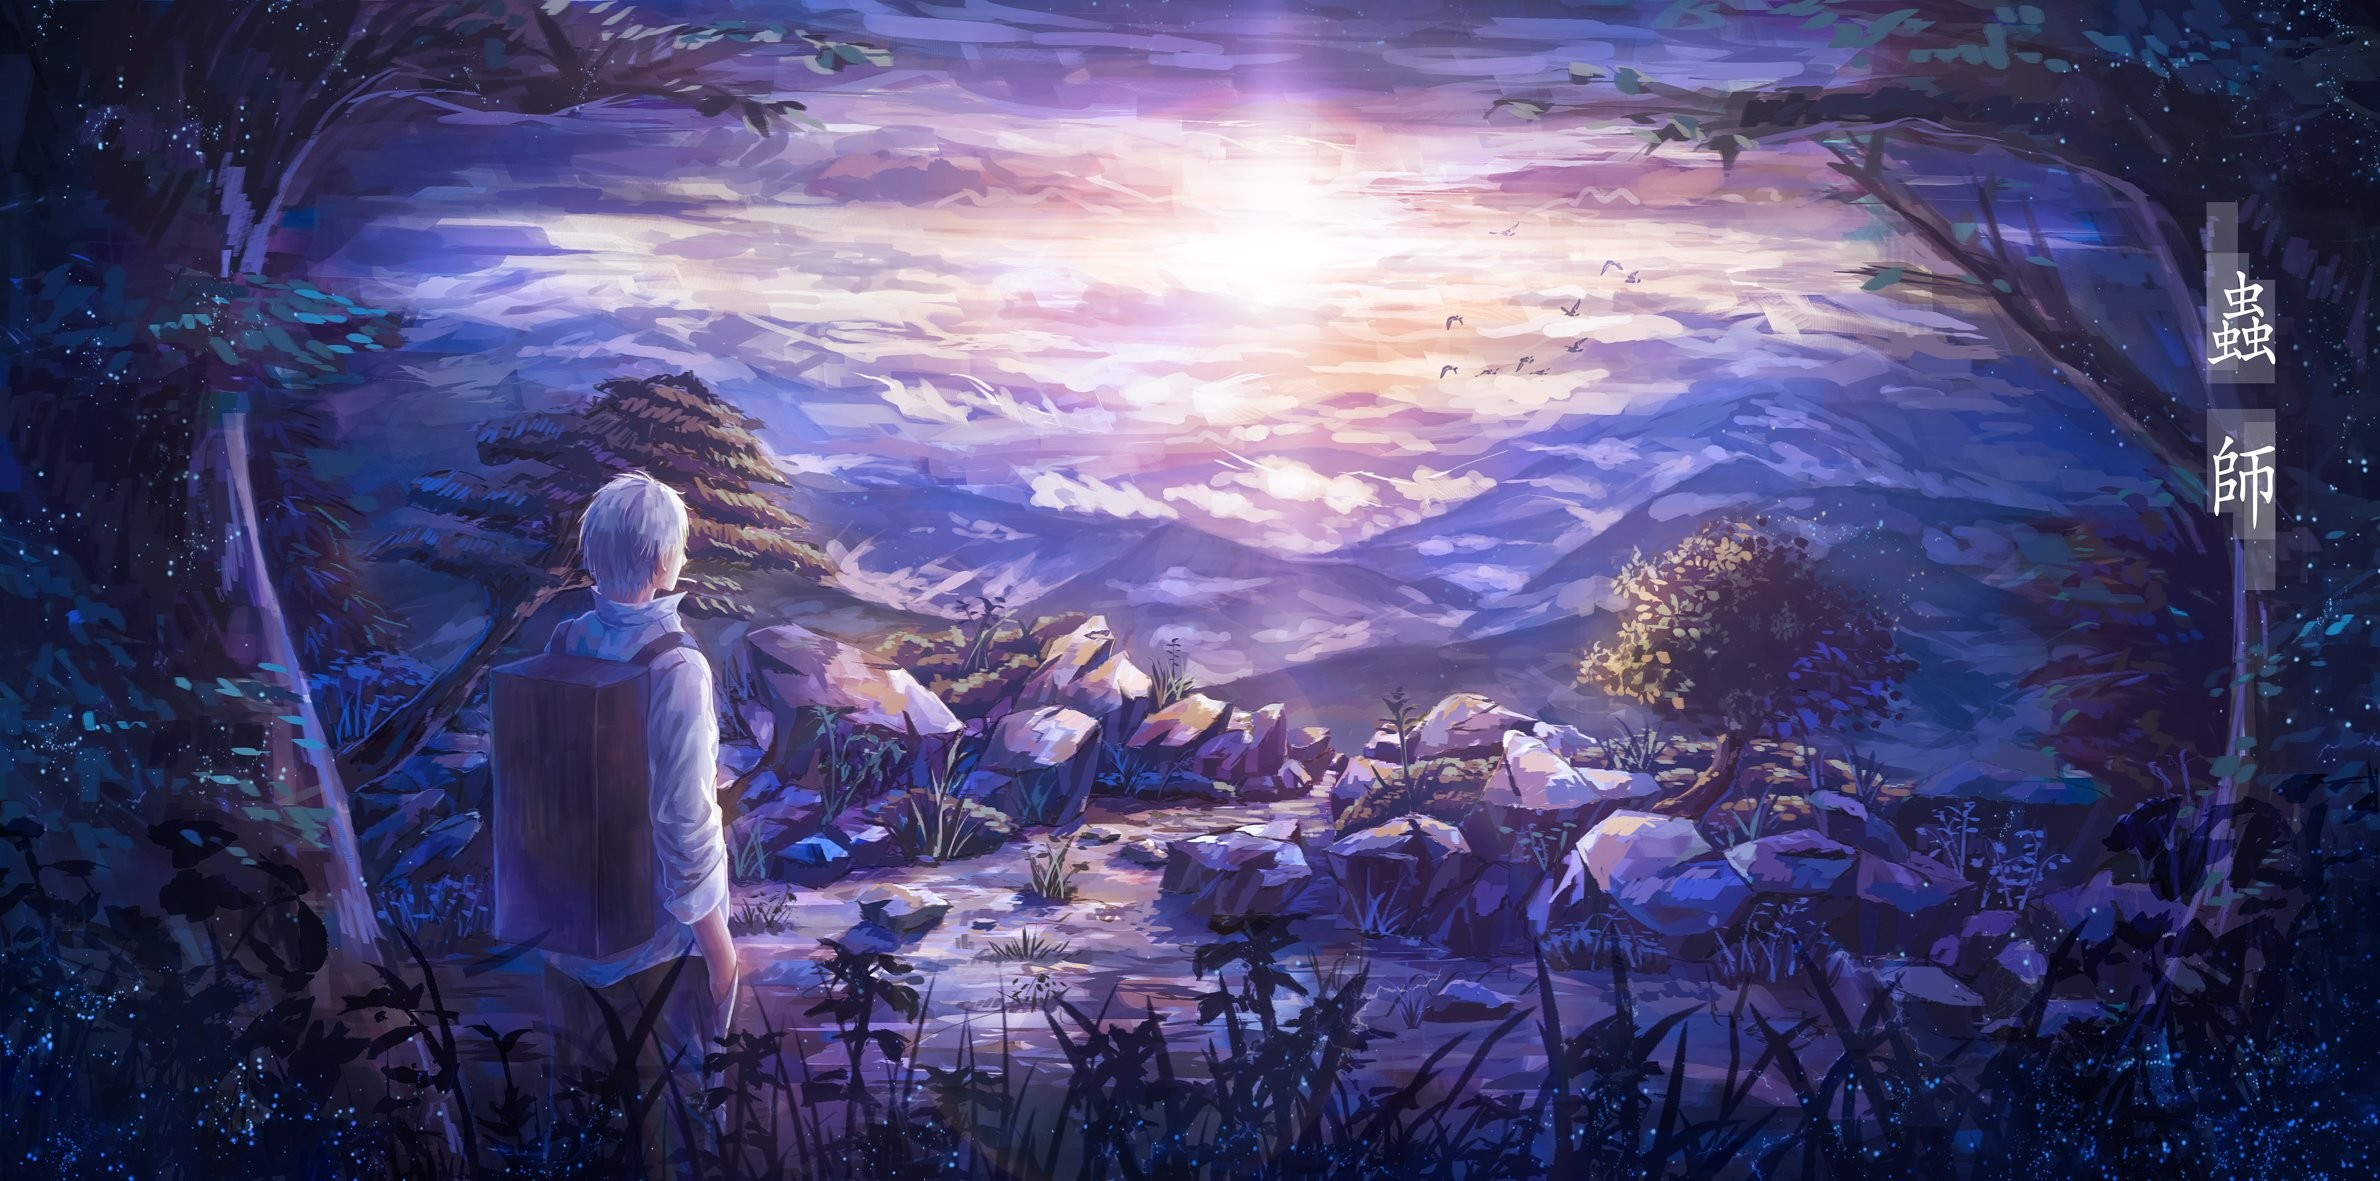 Res: 2380x1181, Mushishi Wallpapers 8 - 2380 X 1181